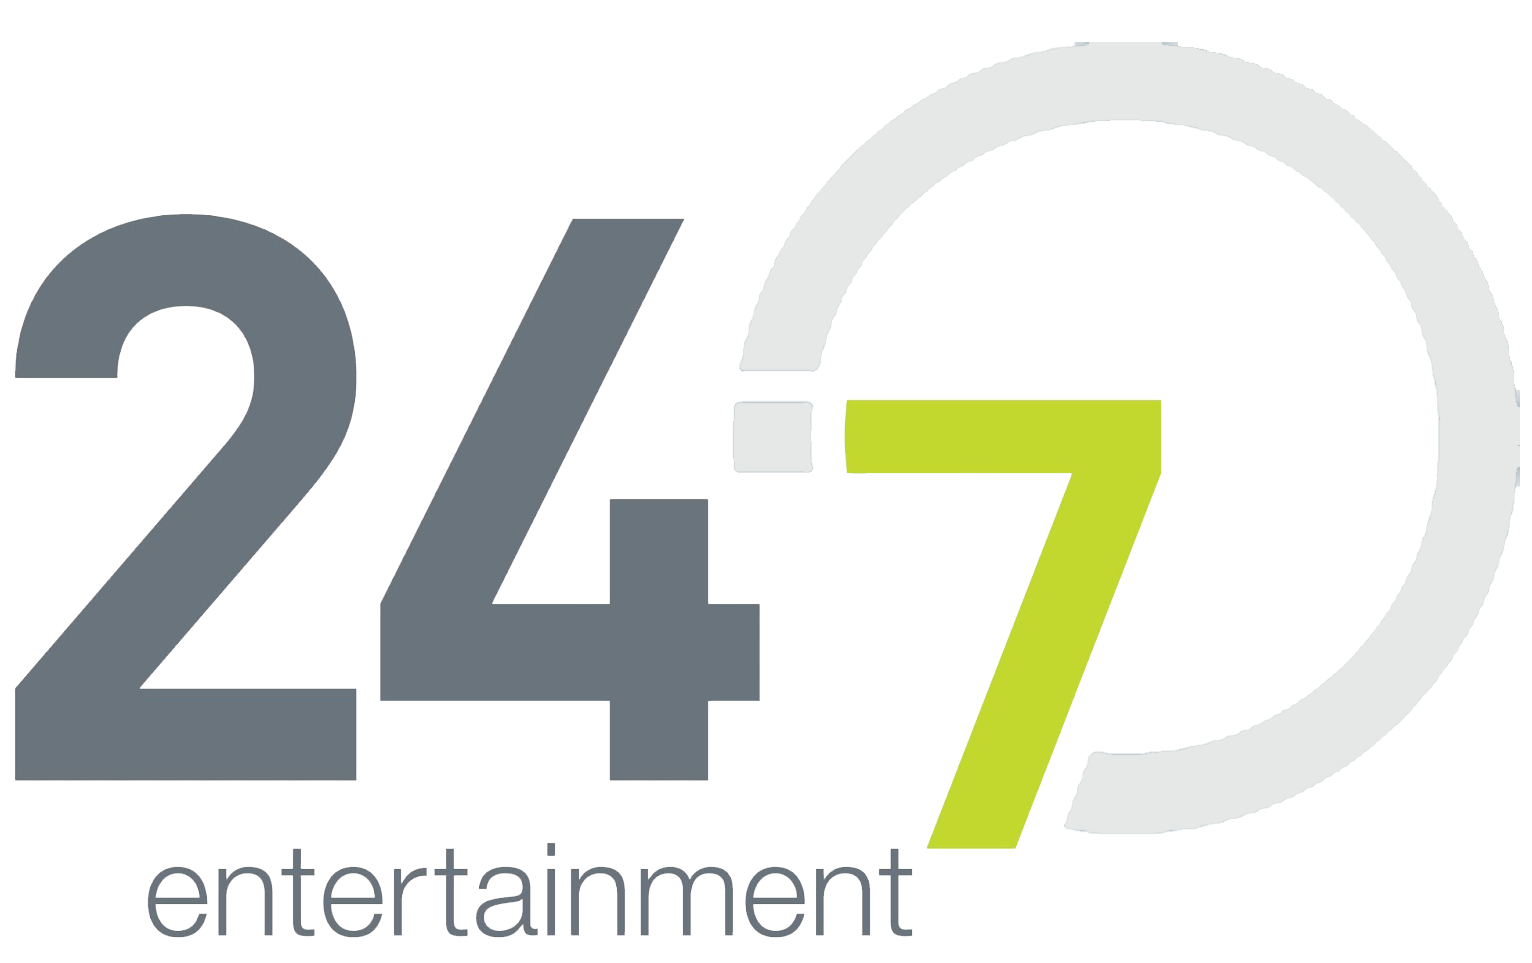 24-7 Entertainment